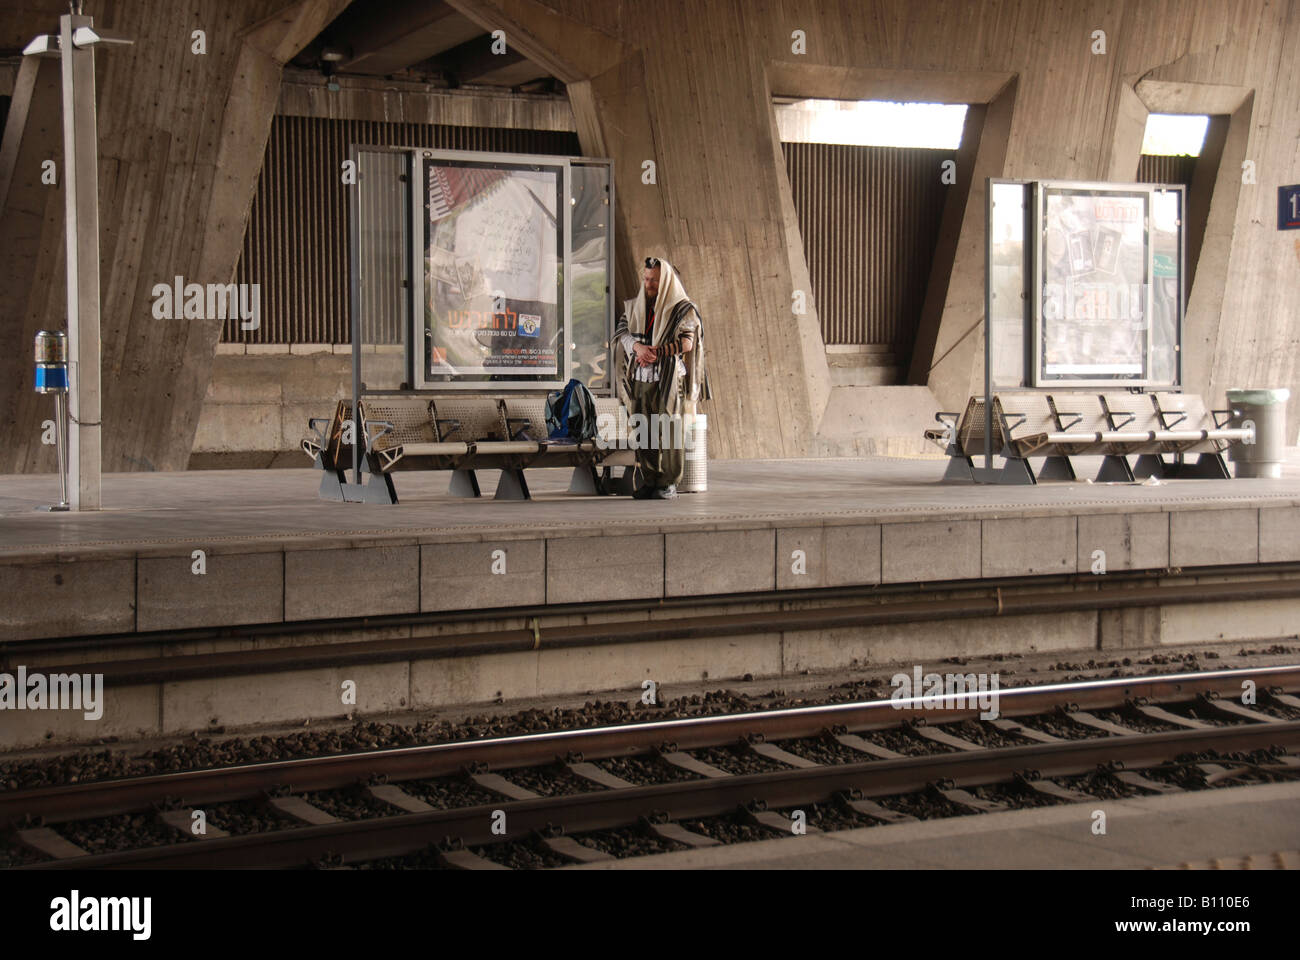 Israel Tel Aviv The interior of the Azrieli Train station Jewish man wrapped in a tallith praying - Stock Image